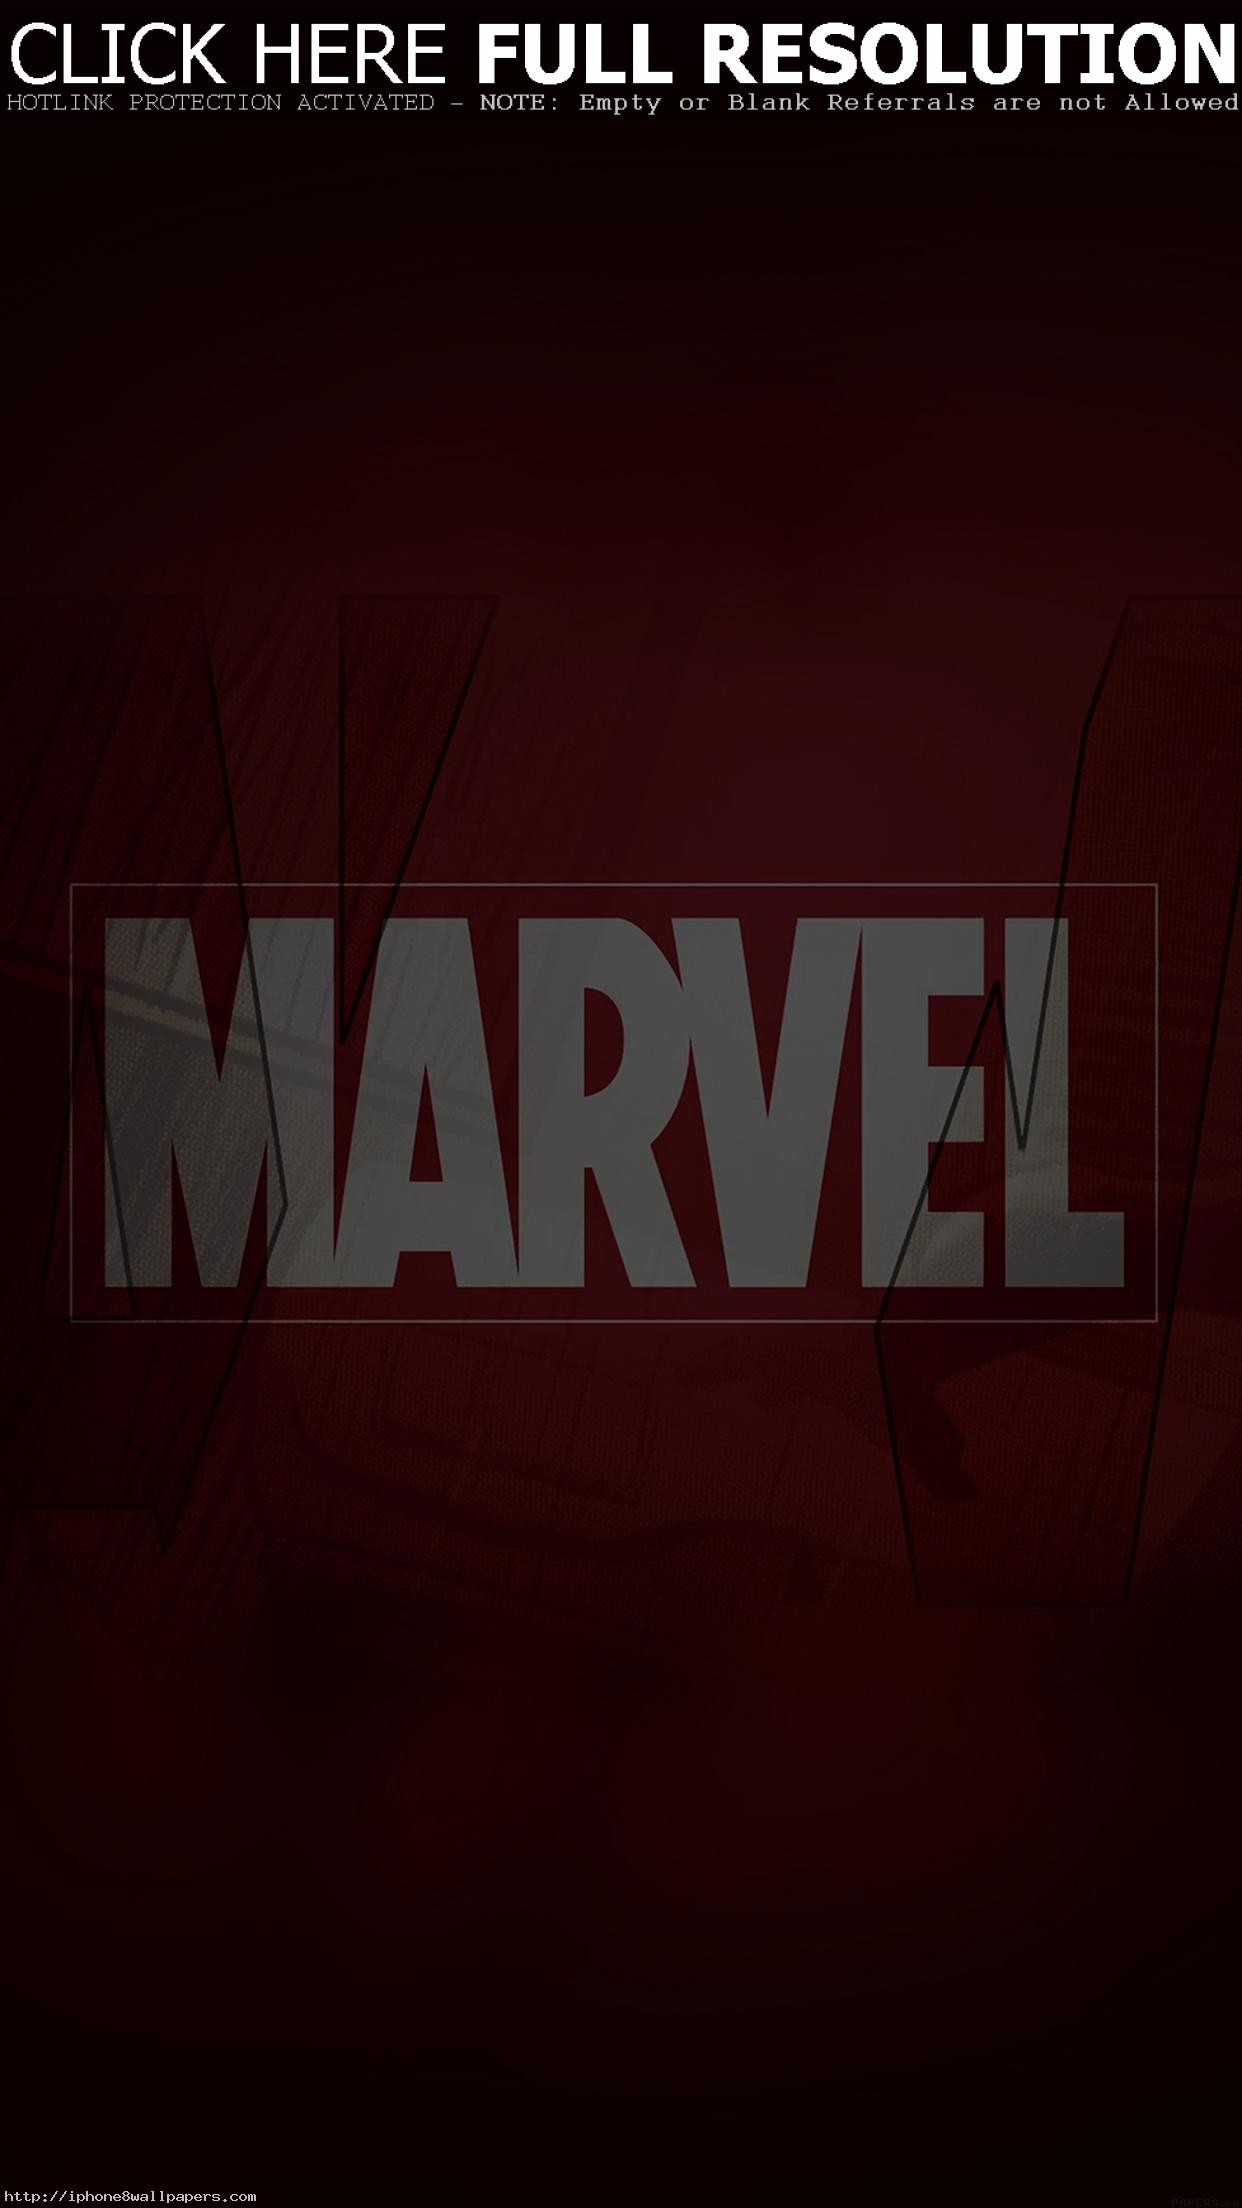 Must see Wallpaper Marvel Android Phone - 1097115-widescreen-marvel-wallpaper-1242x2208  You Should Have_8575.jpg